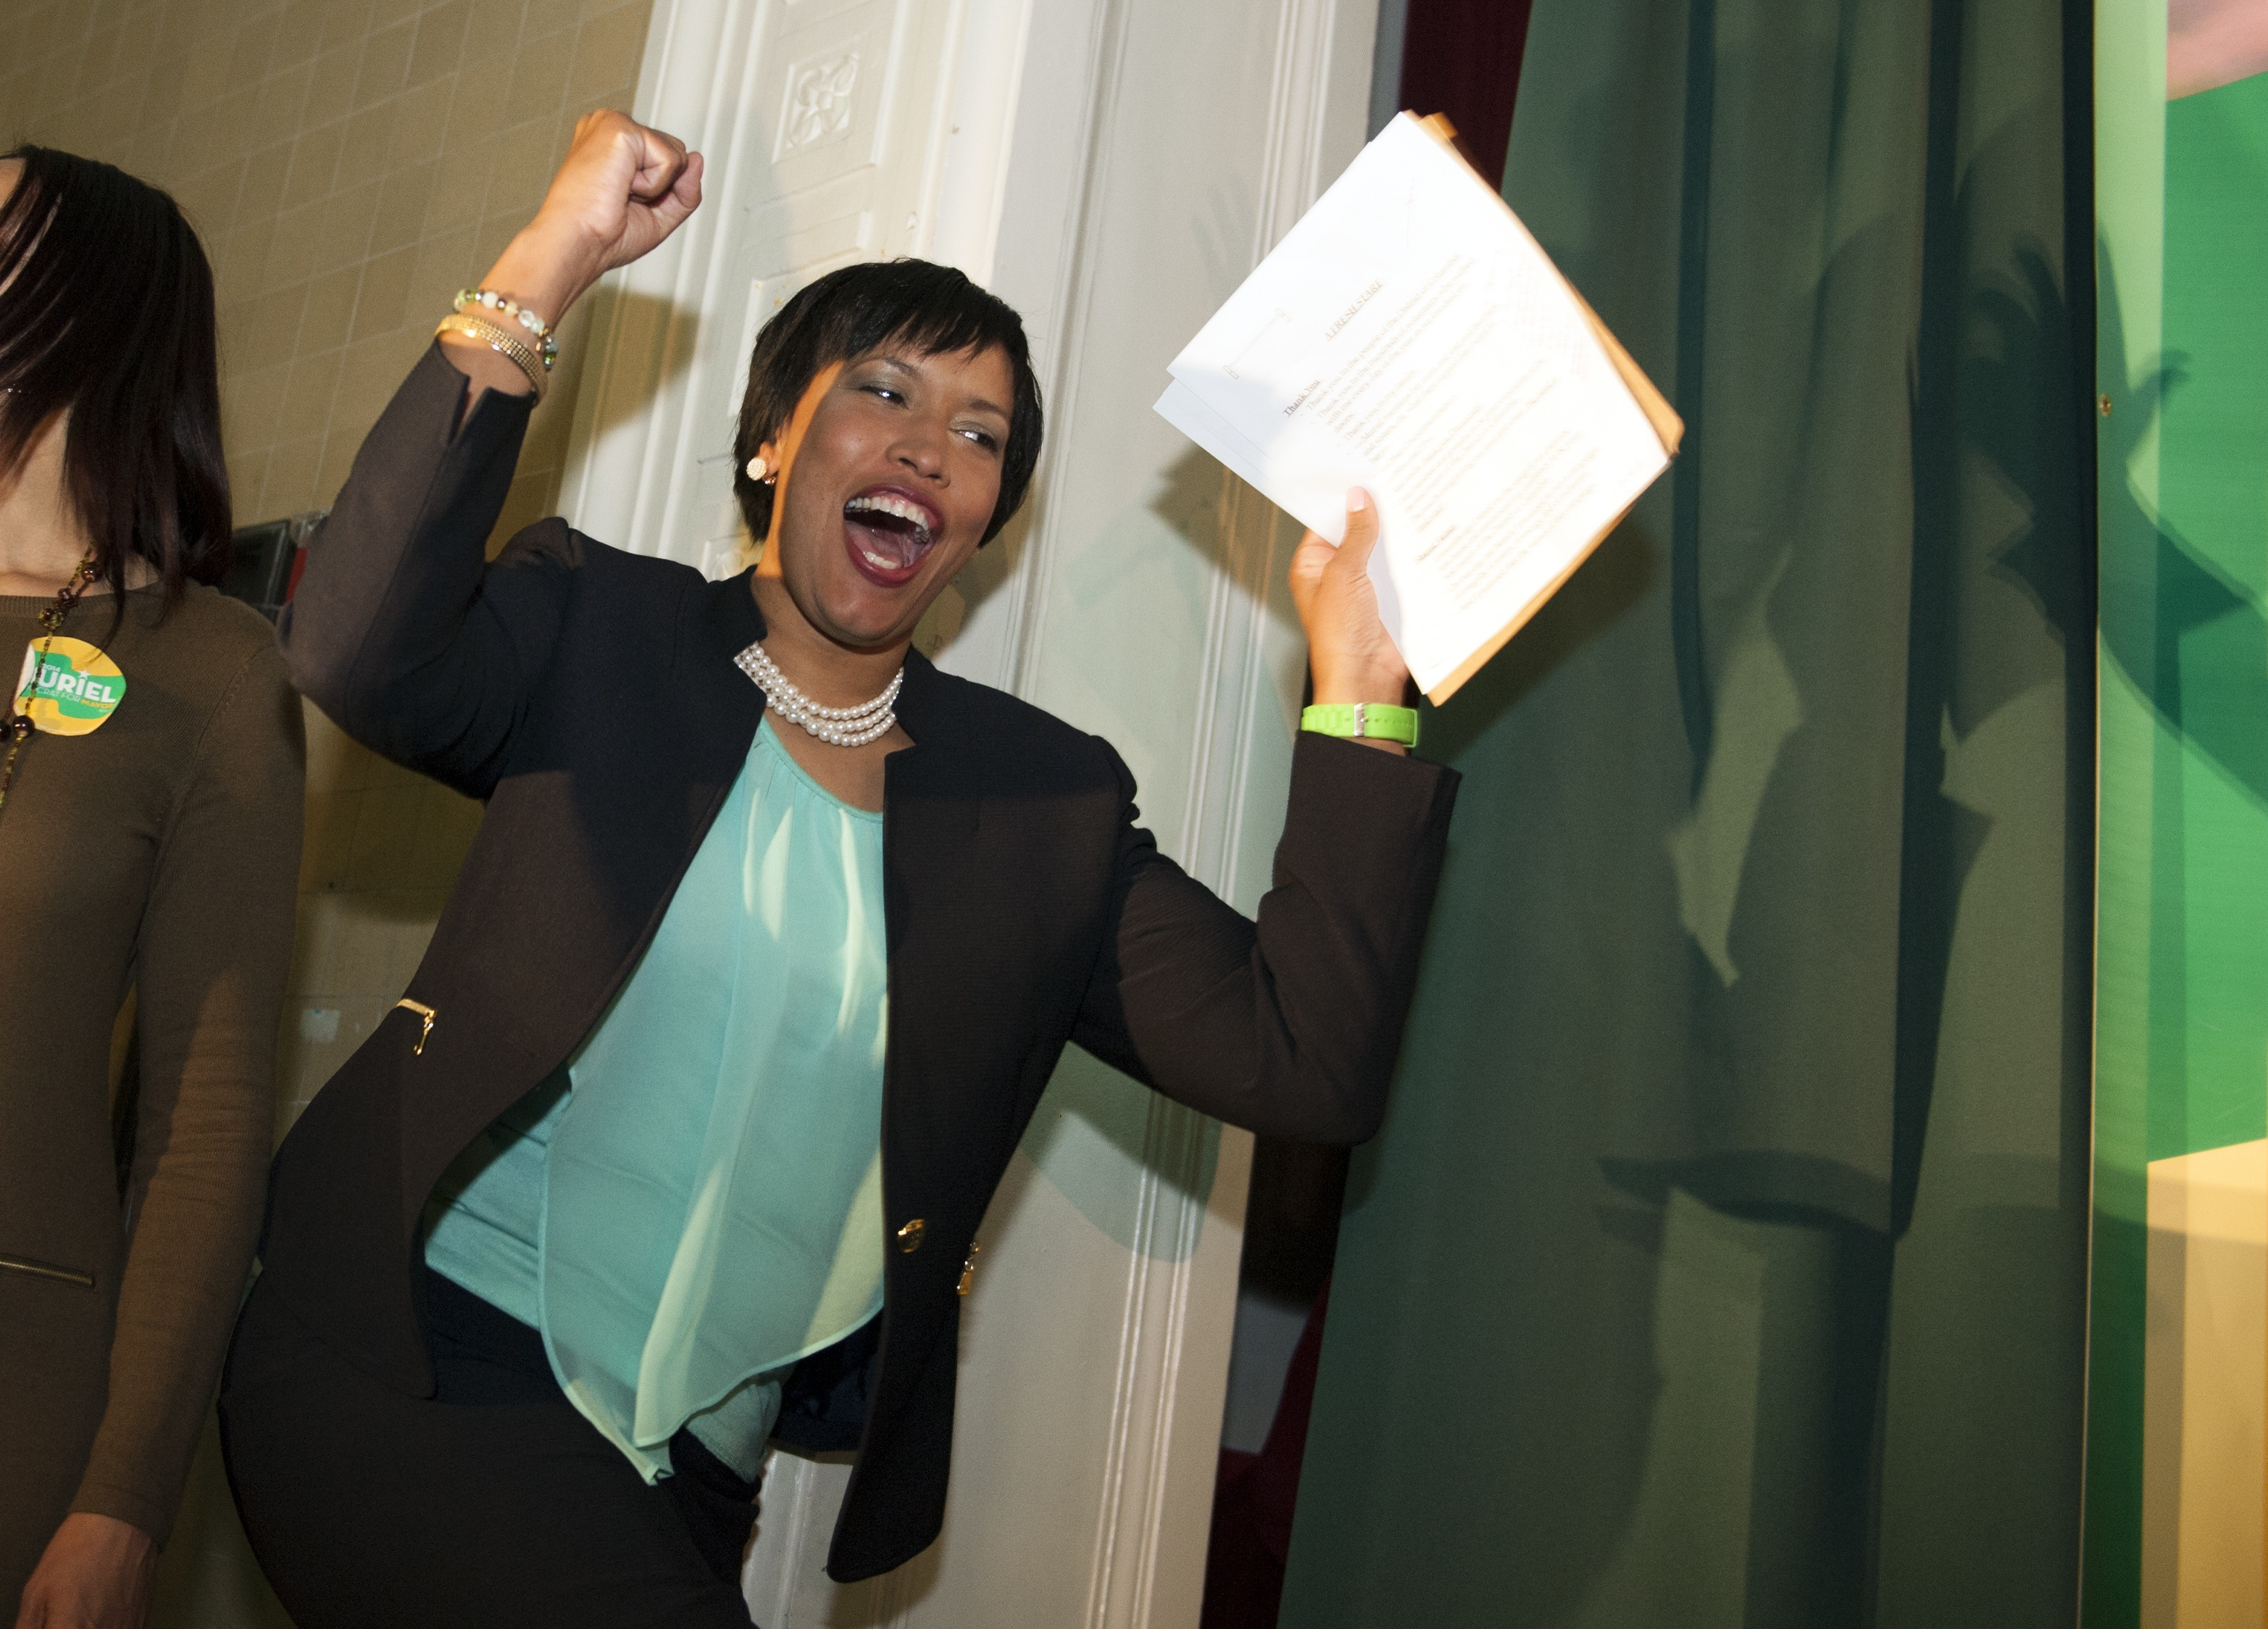 Muriel Bowser celebrates after winning the Democratic mayoral primary in D.C. on April 1, 2014.